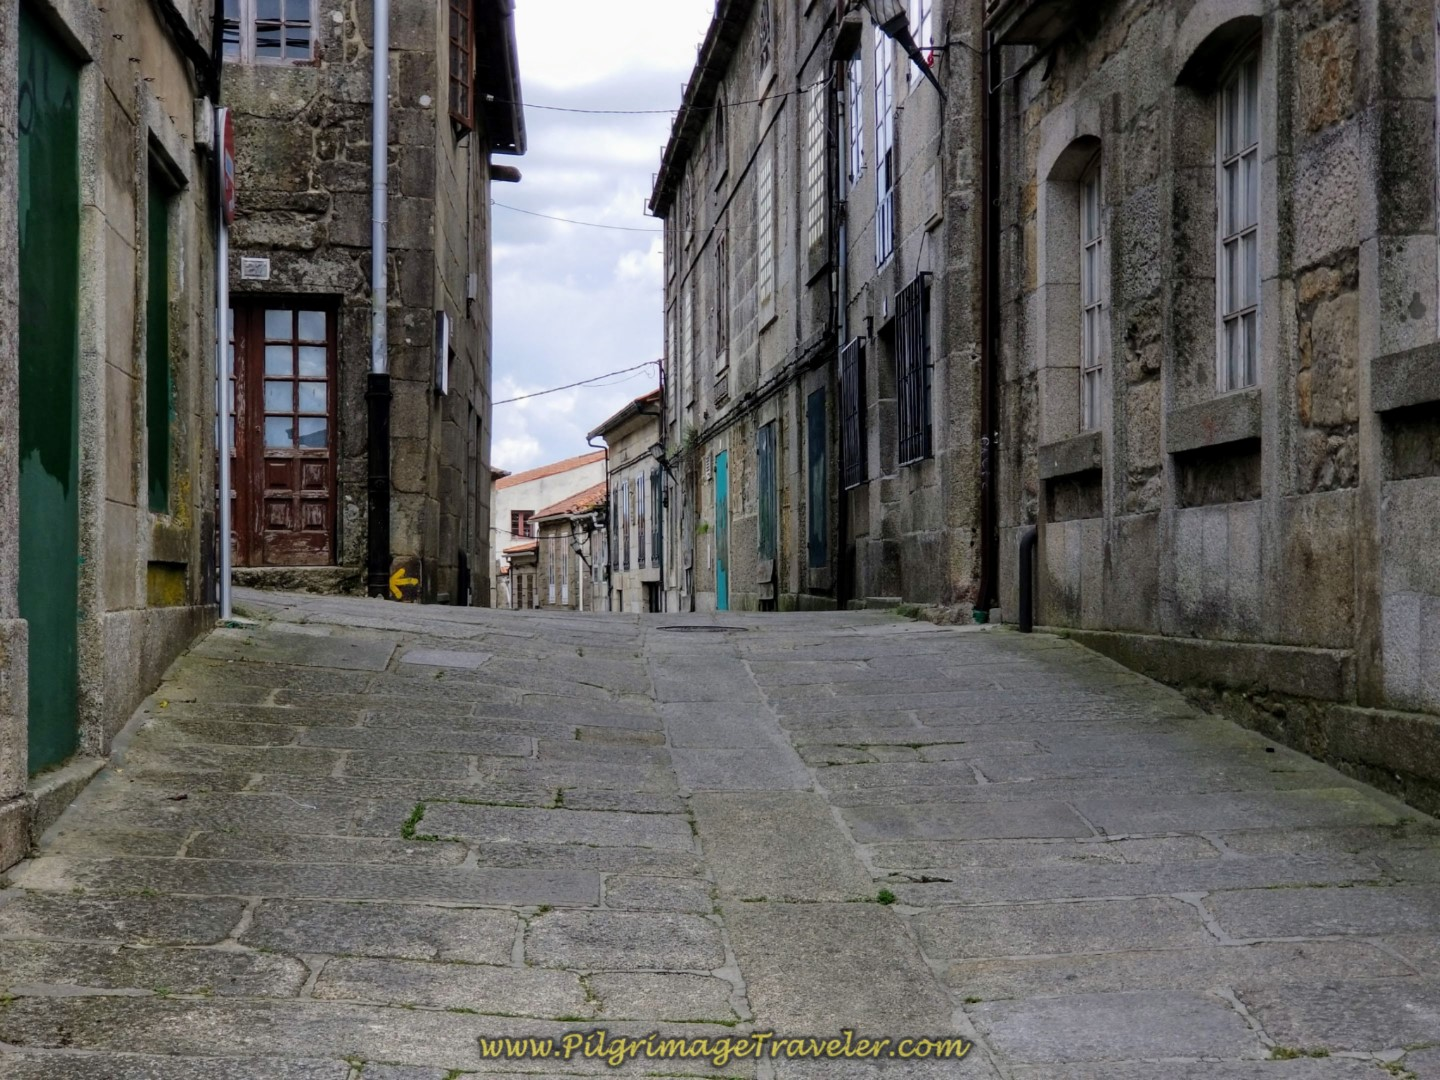 Walking Up the Rúa Piñeiro in Tui, toward the cathedral on day nineteen on the Central Route of the Portuguese Camino